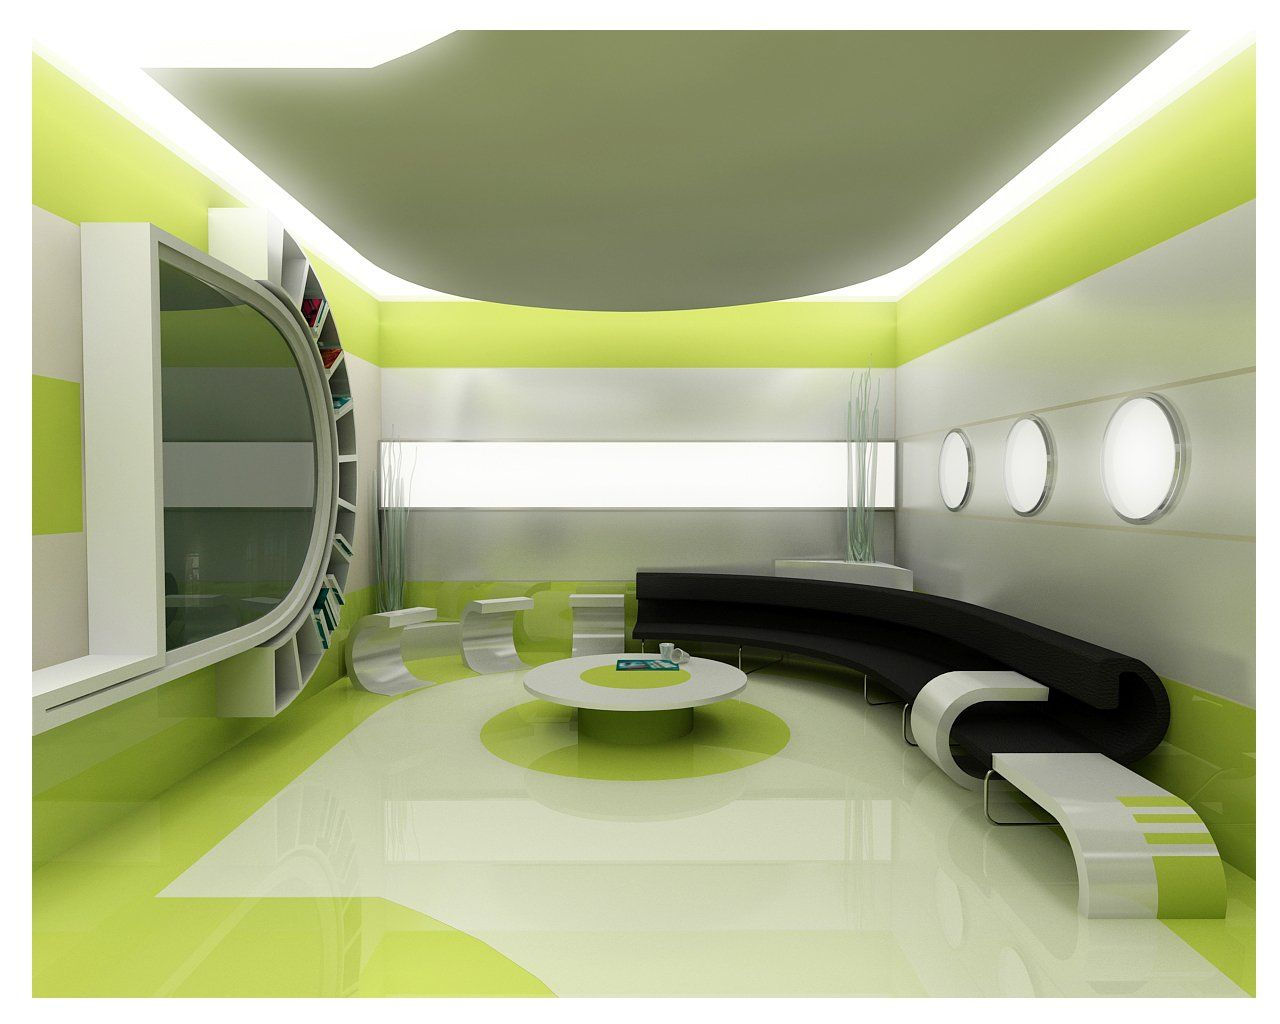 Green interior designs for modern and classical home - Interior design living room modern ...